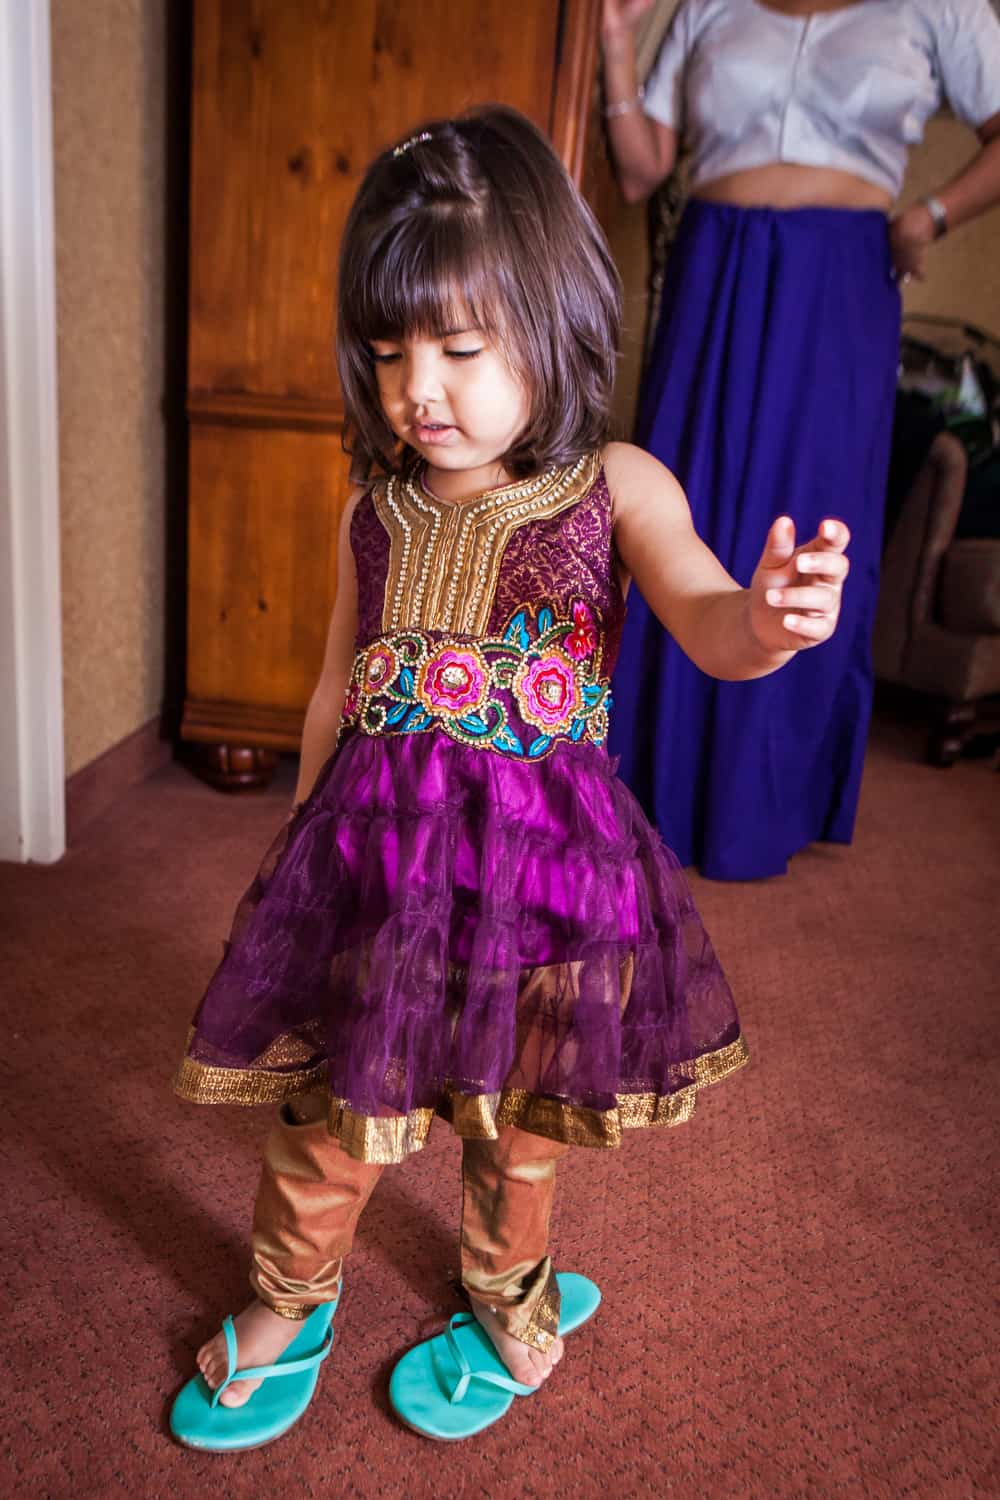 Little girl wearing traditional Indian attire and her mother's flip flops